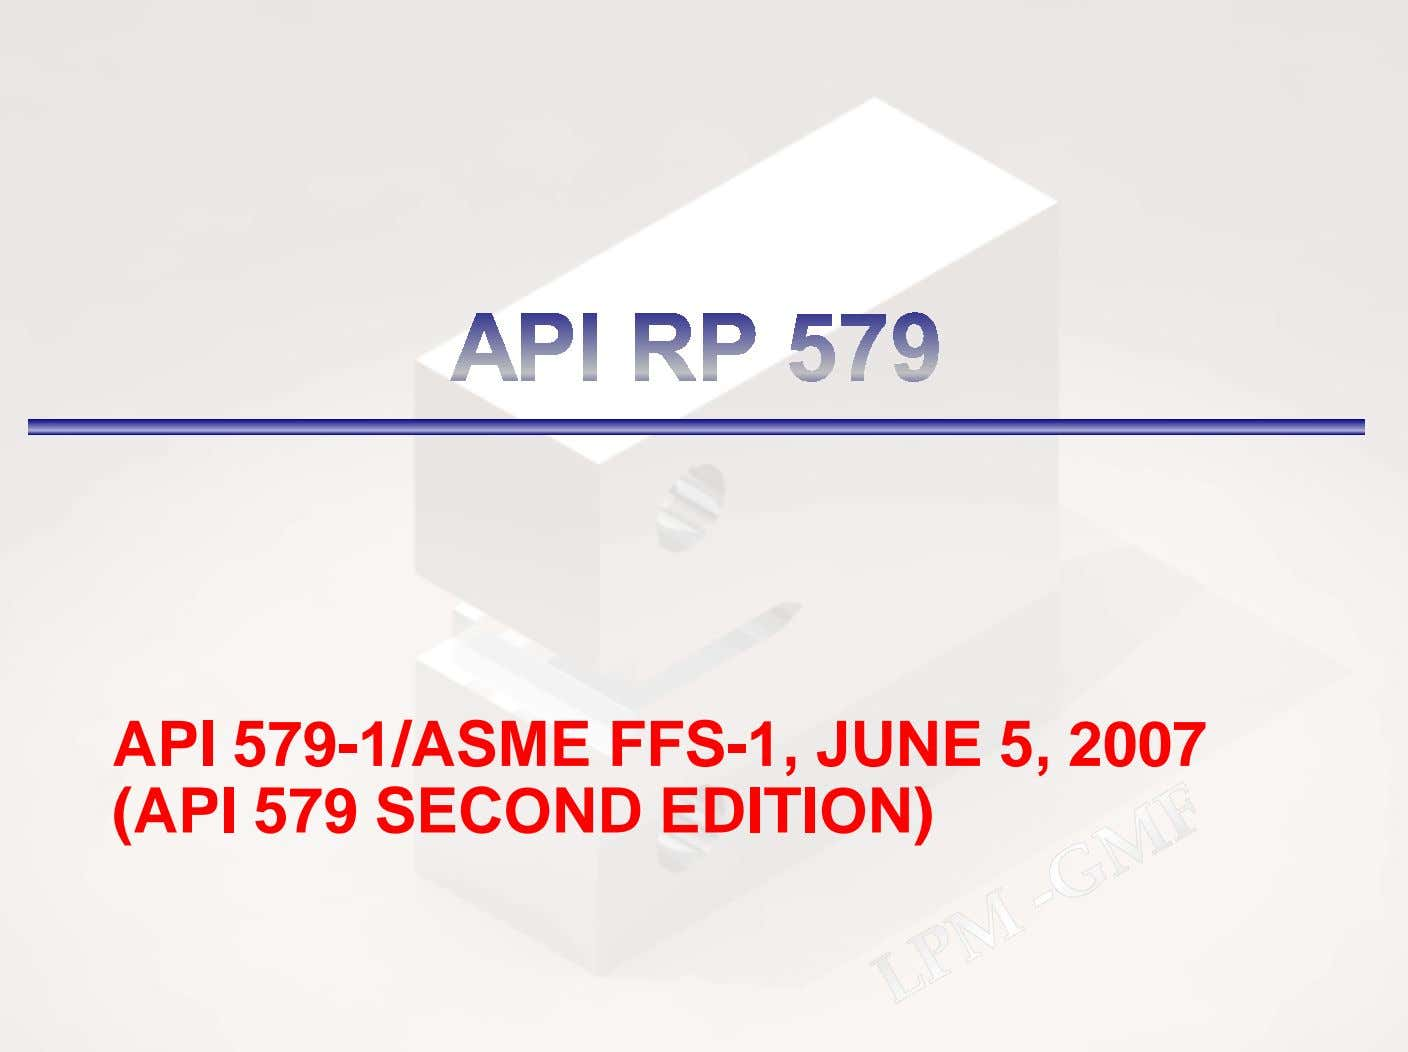 API 579-1/ASME FFS-1, JUNE 5, 2007 (API 579 SECOND EDITION)